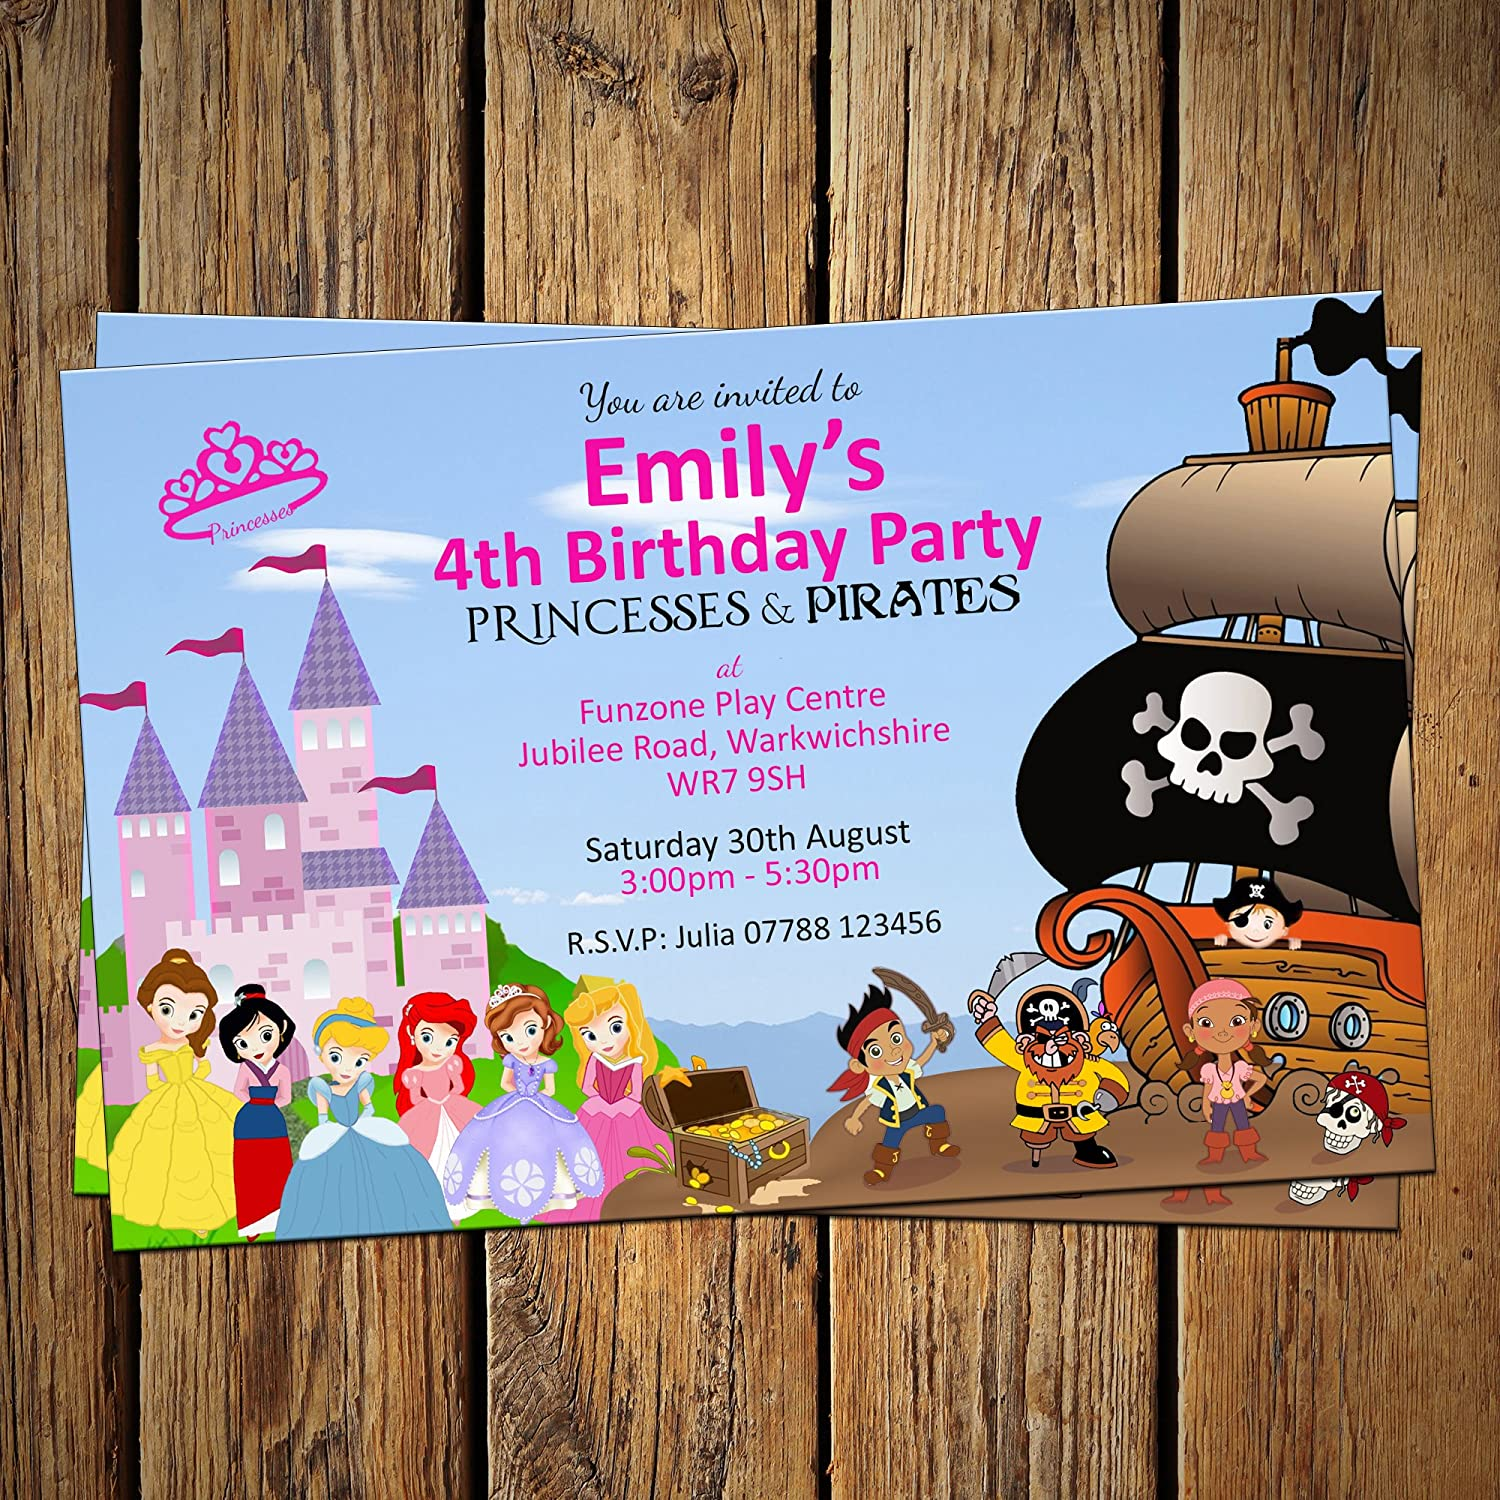 Princess Pirate Personalised Invitations Envelopes Pack of 20 – Princess and Pirates Party Invitations